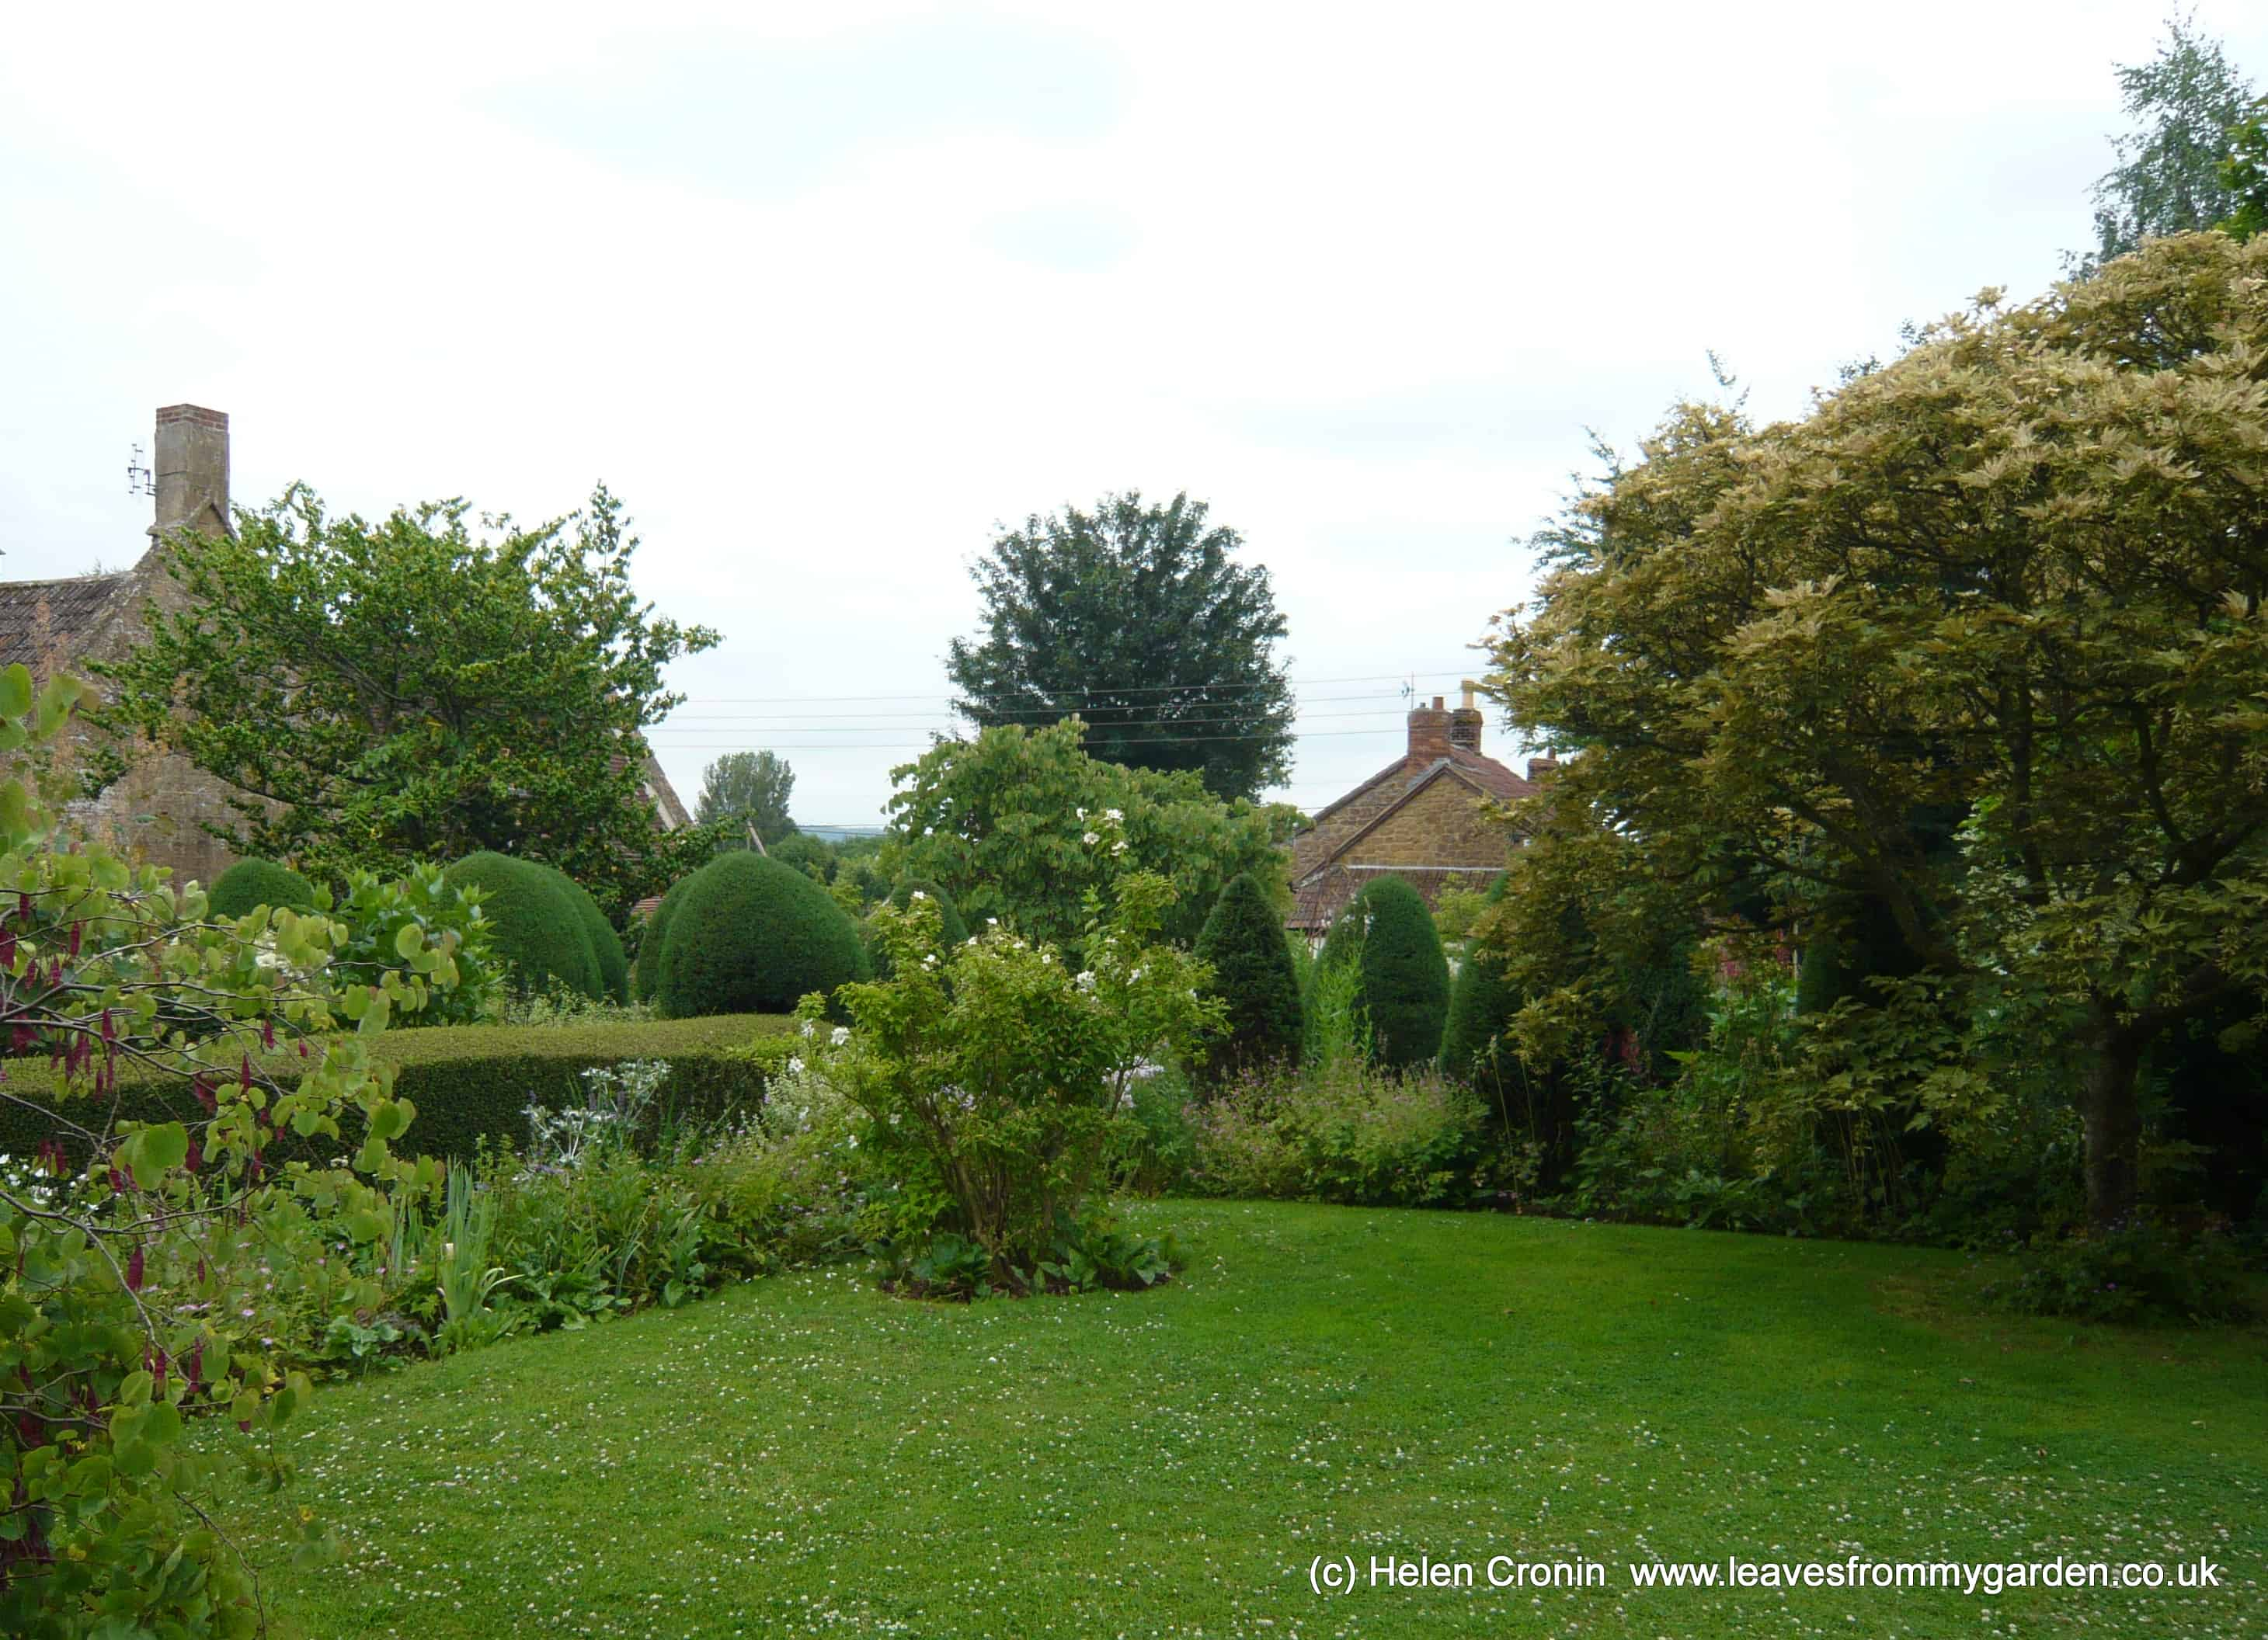 The Top Lawn garden created by Margery fish